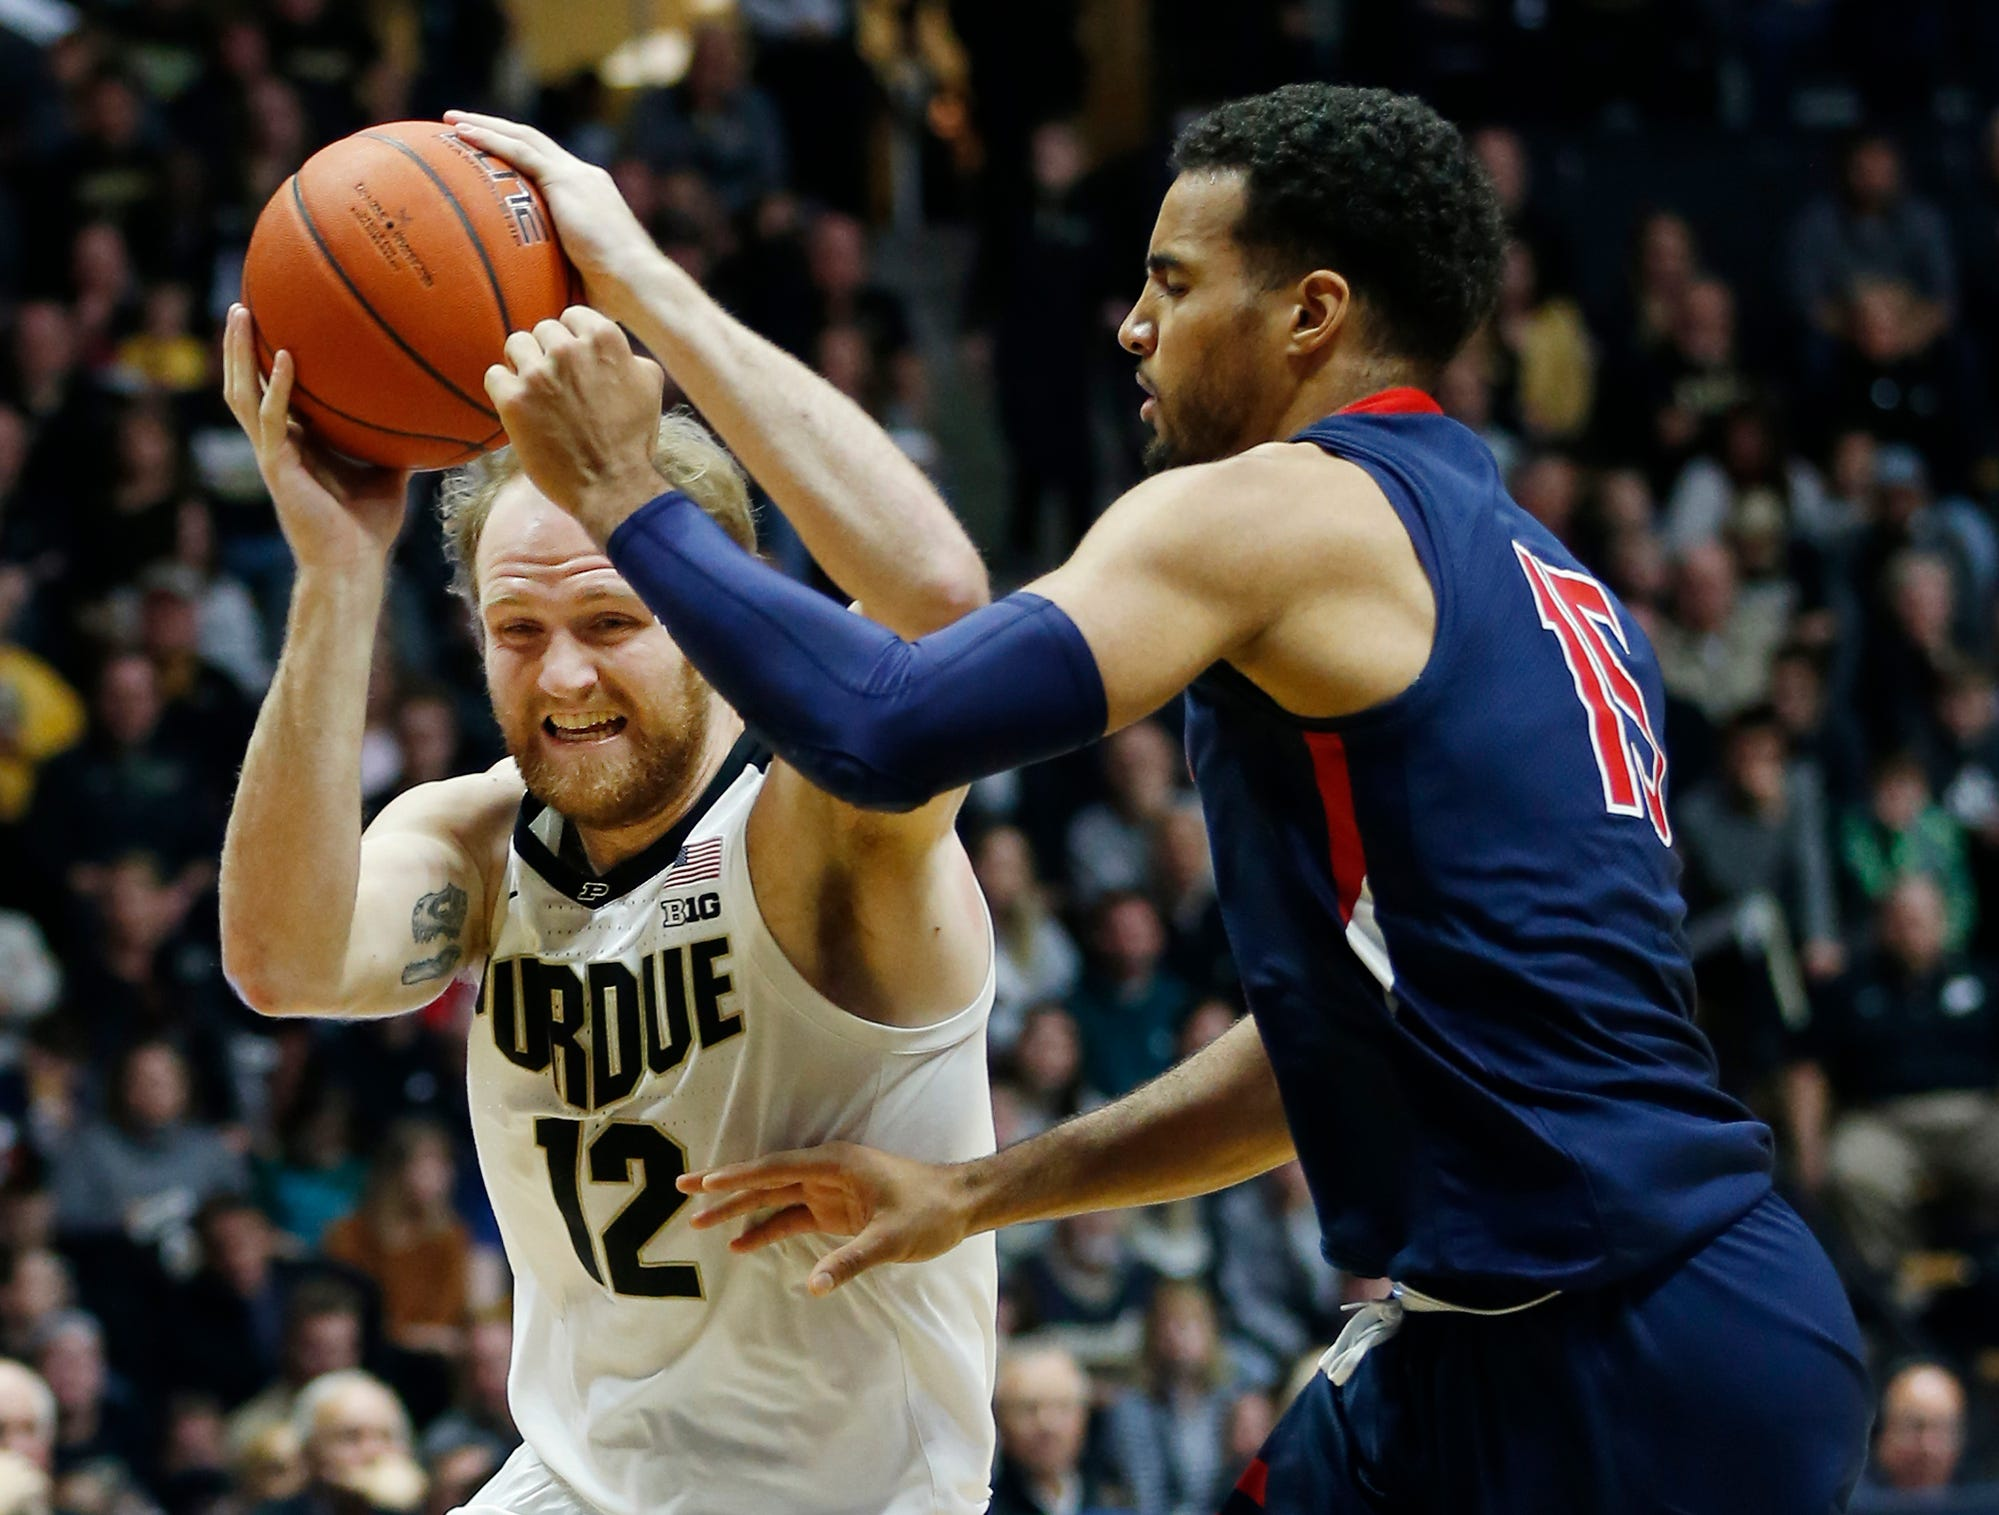 Evan Boudreaux of Purdue with a drive against Yannis Mendy of Robert Morris Friday, November 23, 2018, at Mackey Arena. Purdue defeated Robert Morris 84-46.